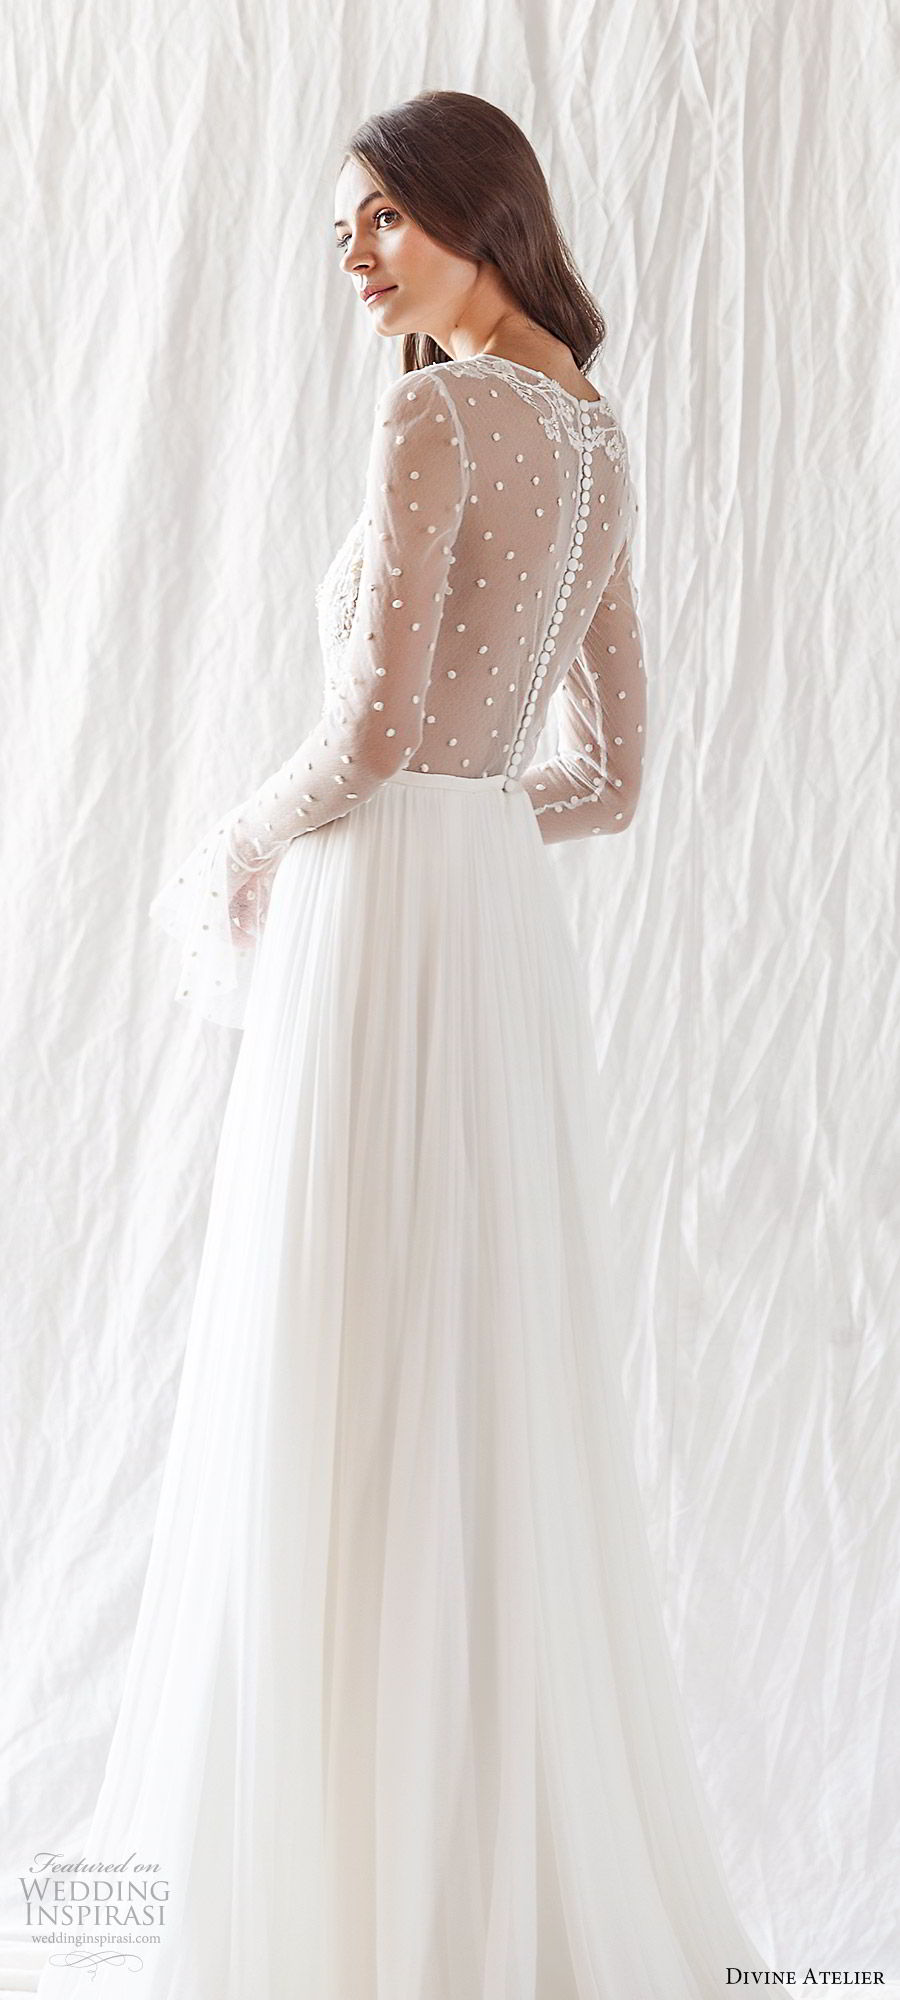 divine atelier 2019 bridal illusion long bell sleeves jewel neckline sheer lace bodice soft a line wedding dress (11) sheer back chapel train romantic boho chic bv